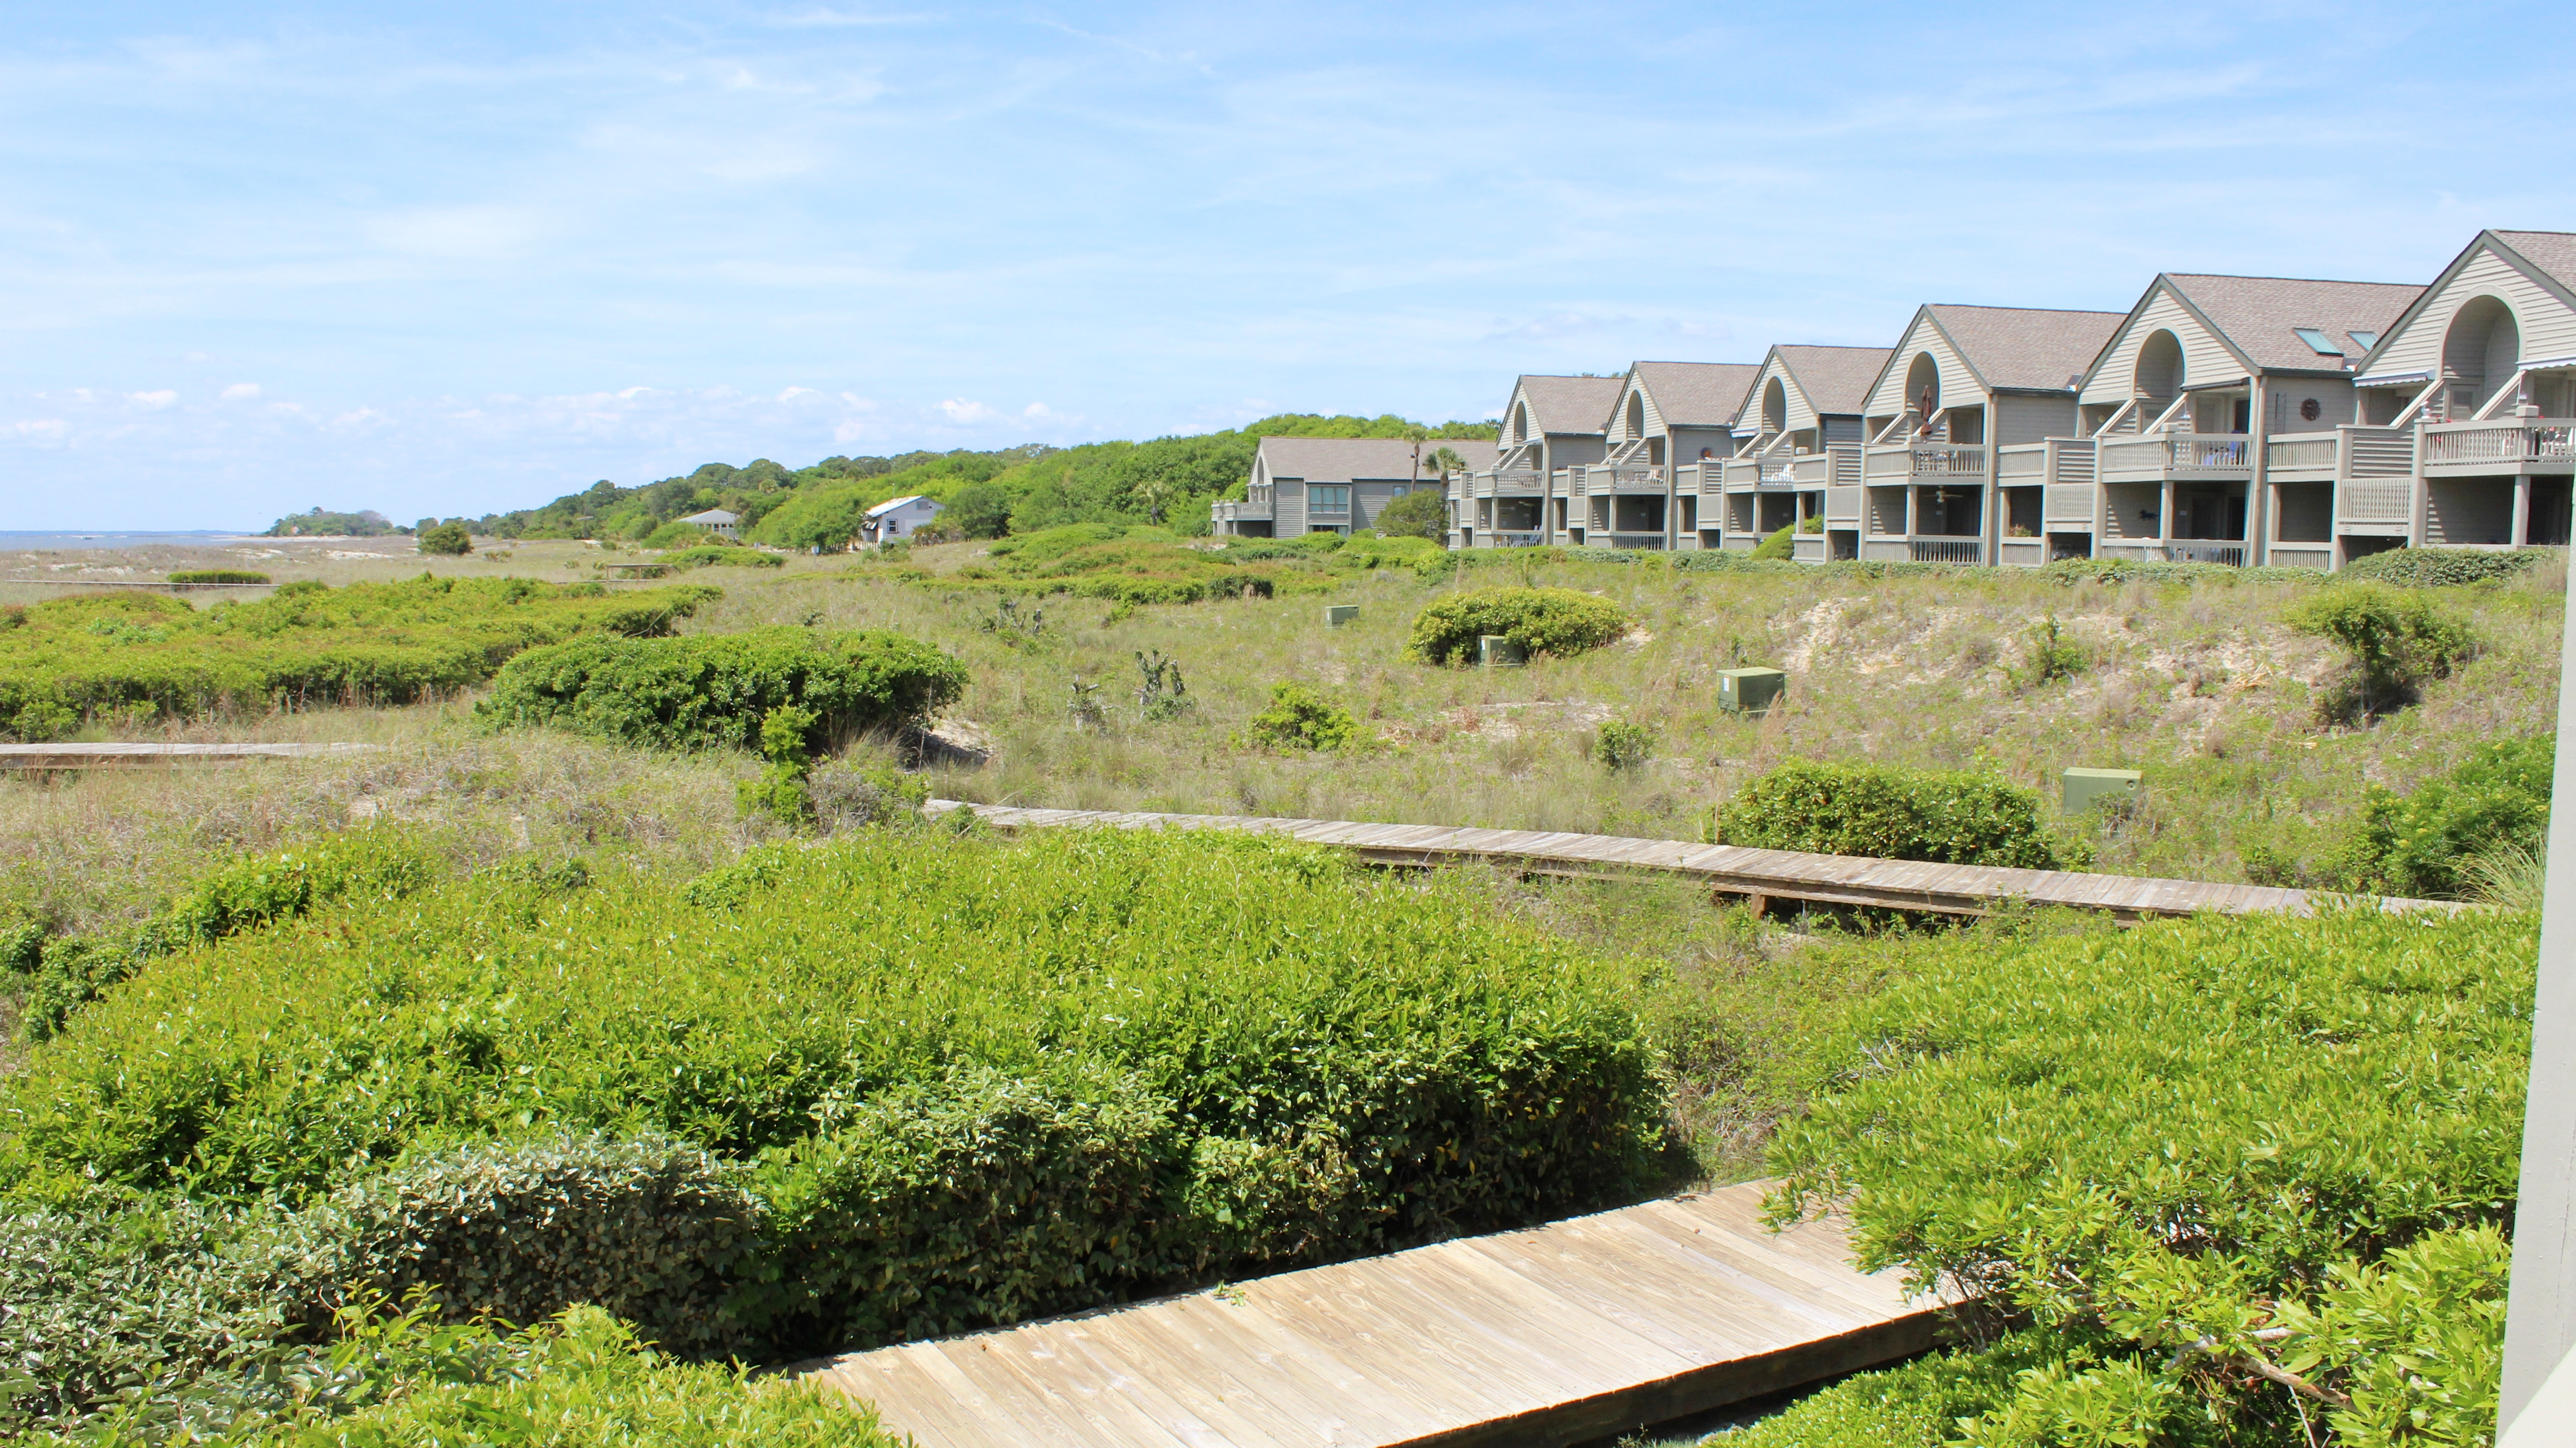 Step off the porch to the boardwalk leading to the beach.